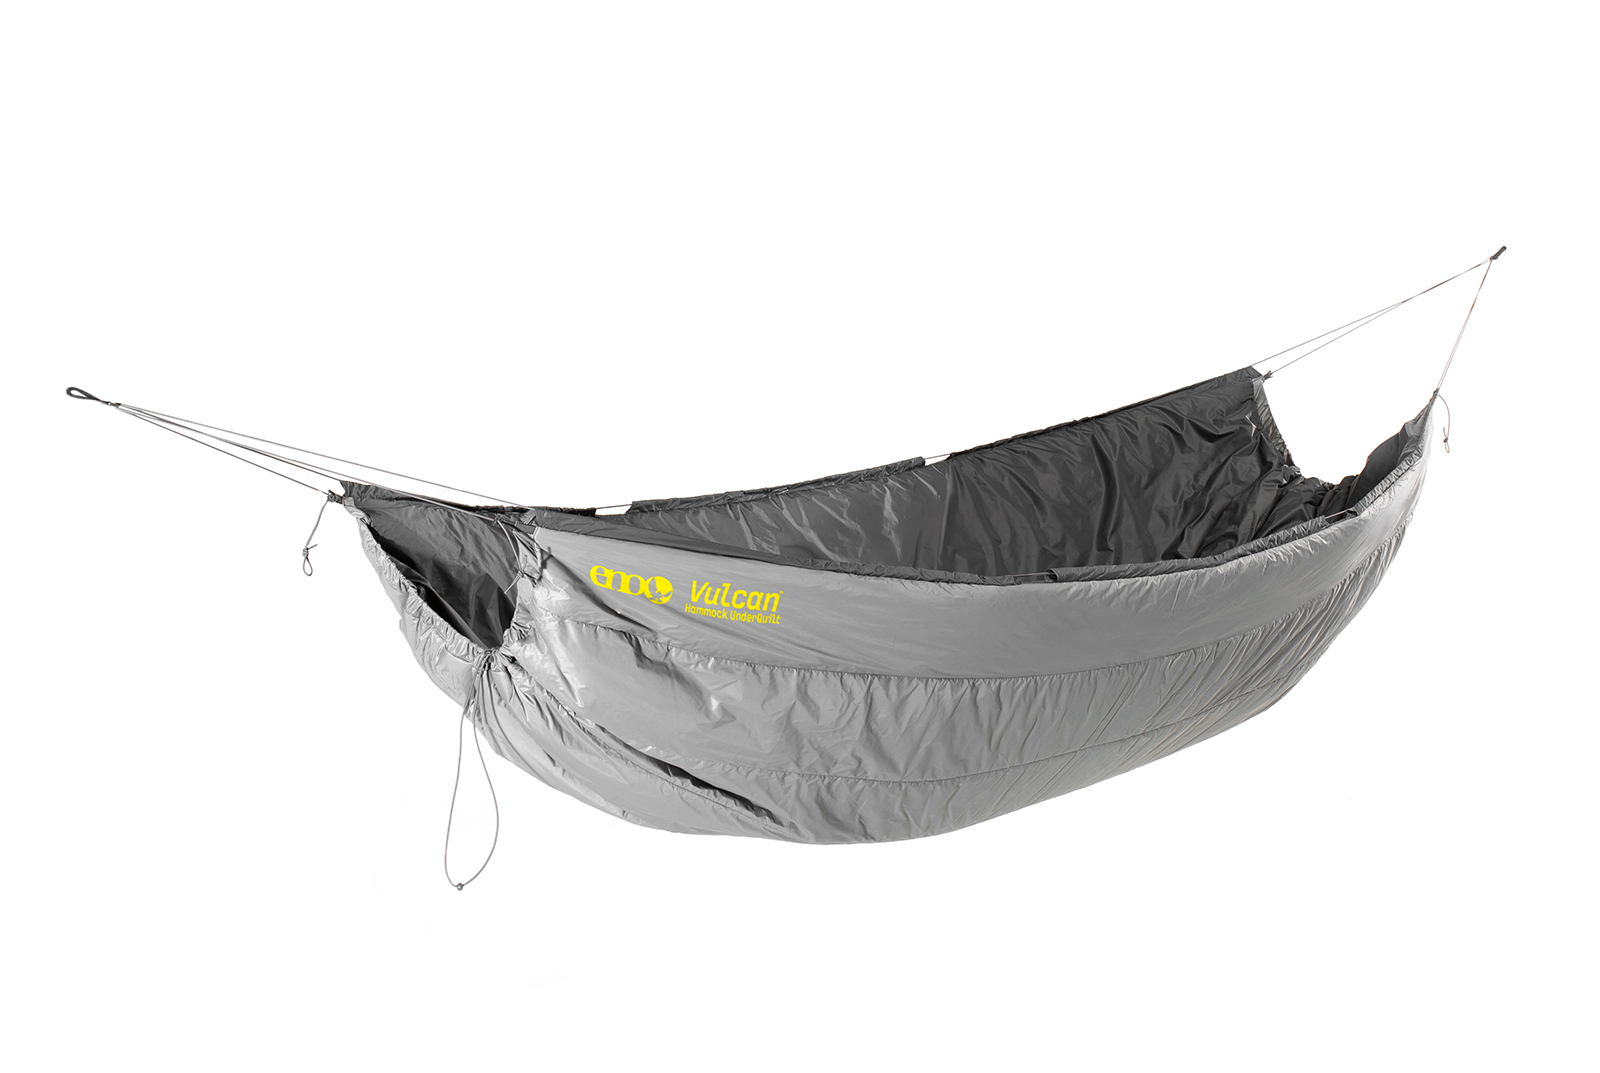 ENO Nation Copy of Vulcan™ UnderQuilt - 17519570124949